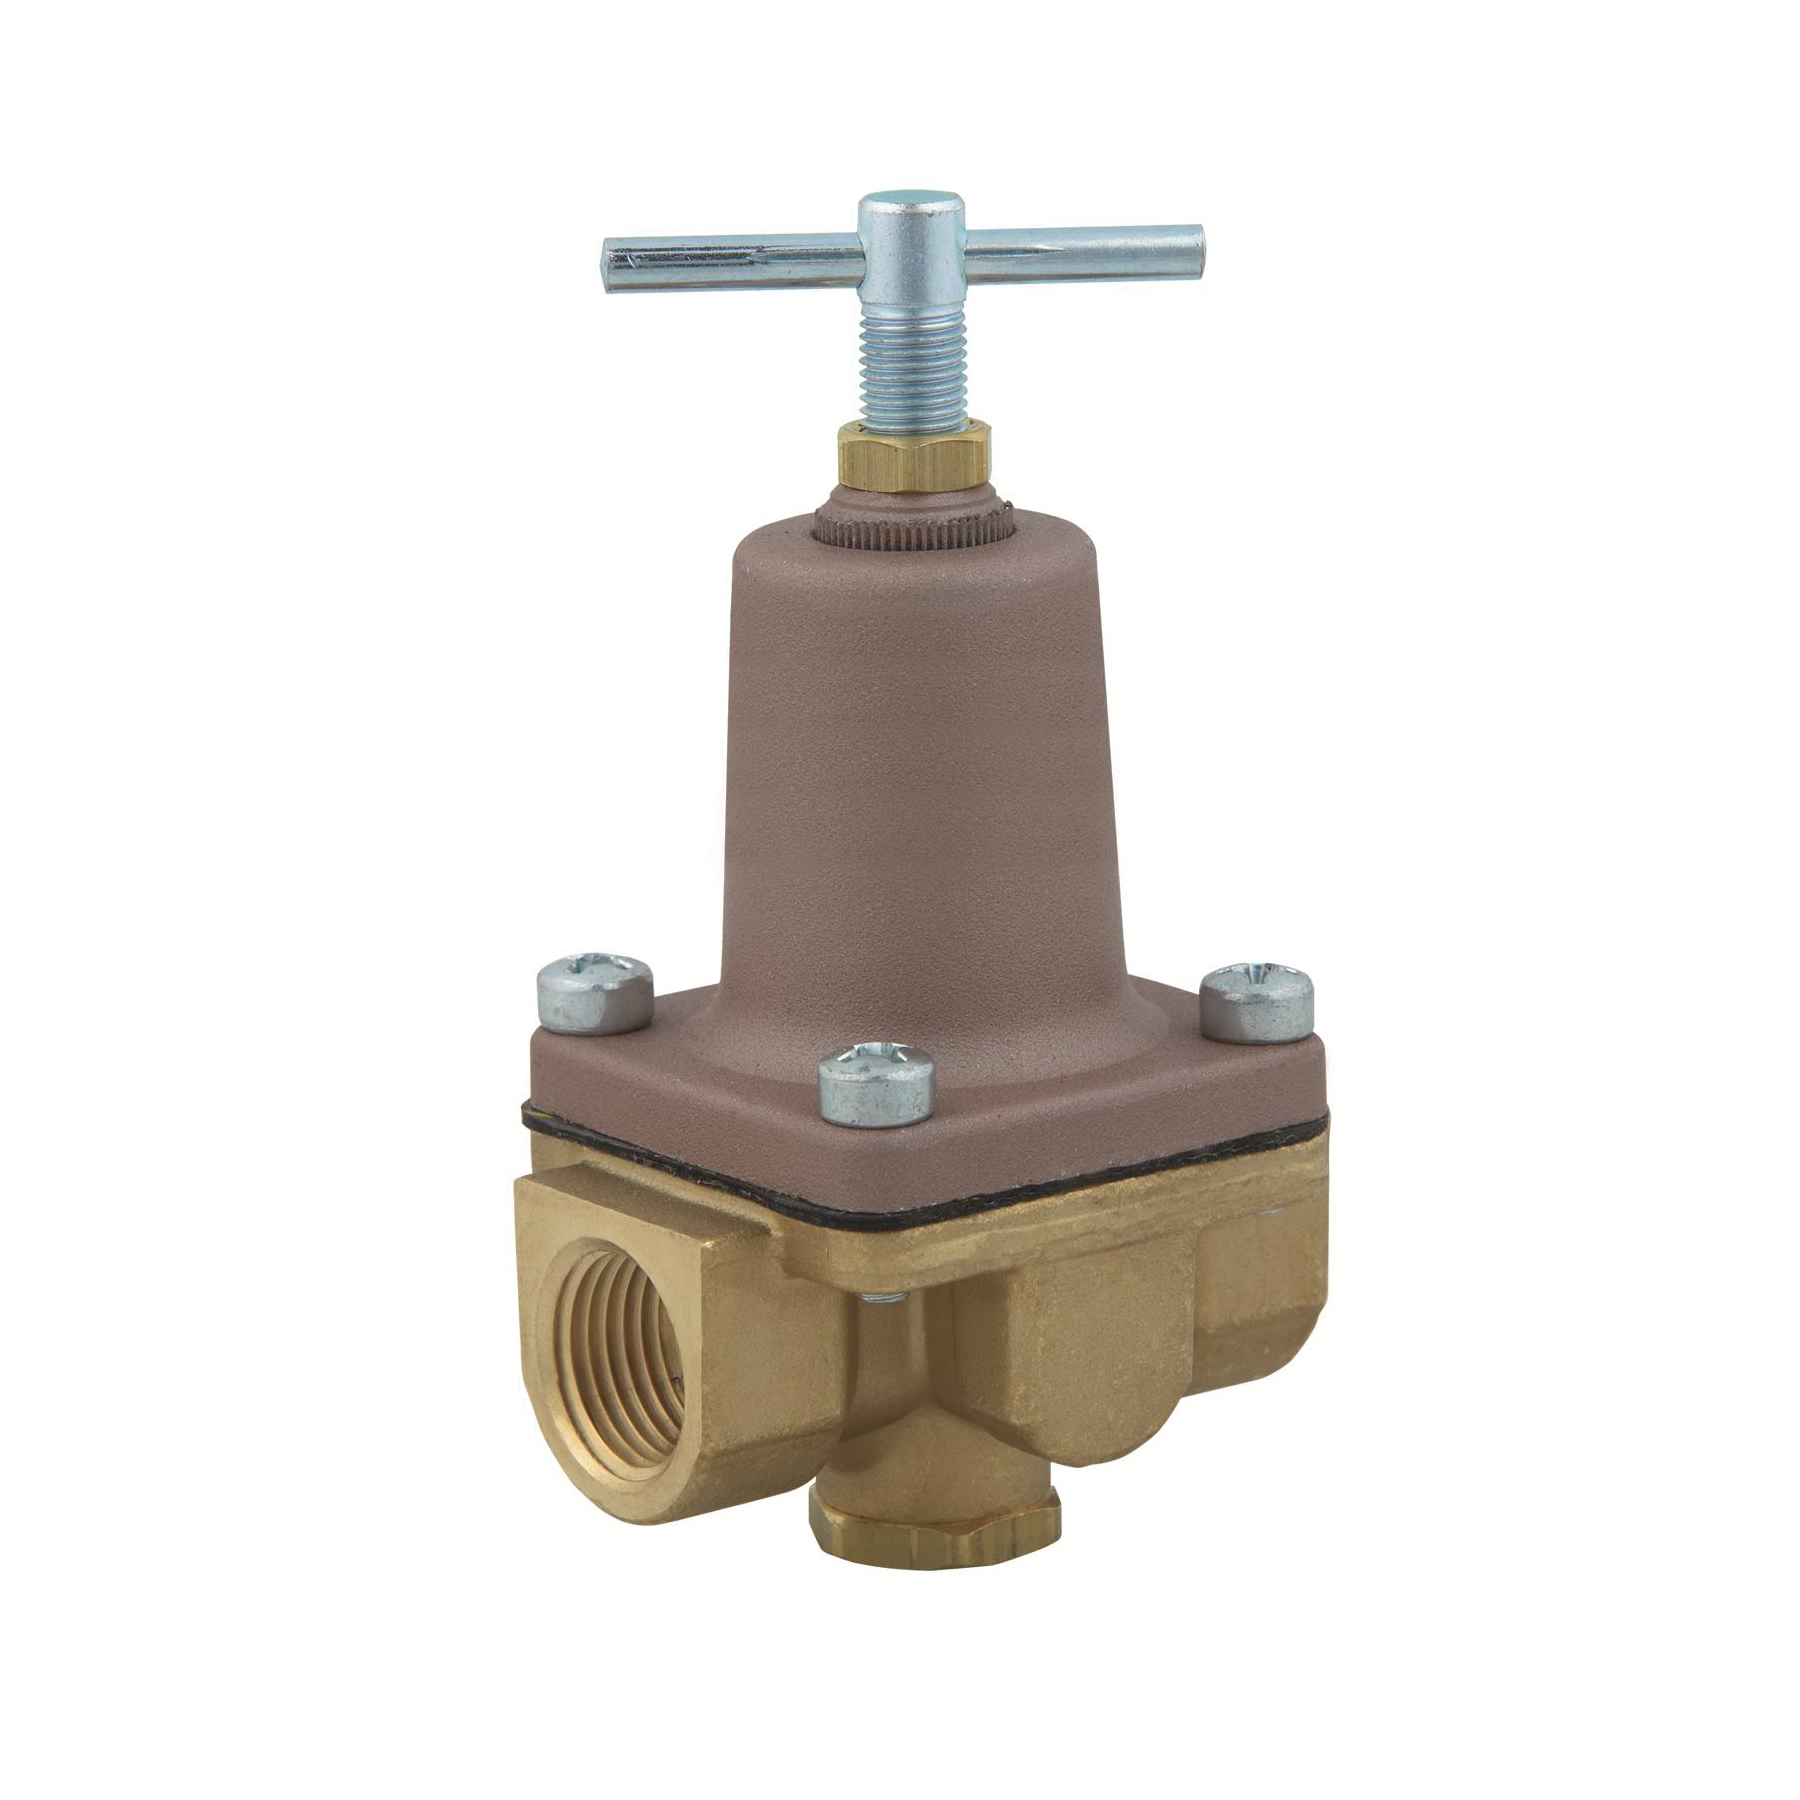 WATTS® 0009815 LF26A 2-Way Small Pressure Regulator, 3/8 in, FNPT, 300 psi, Brass Body